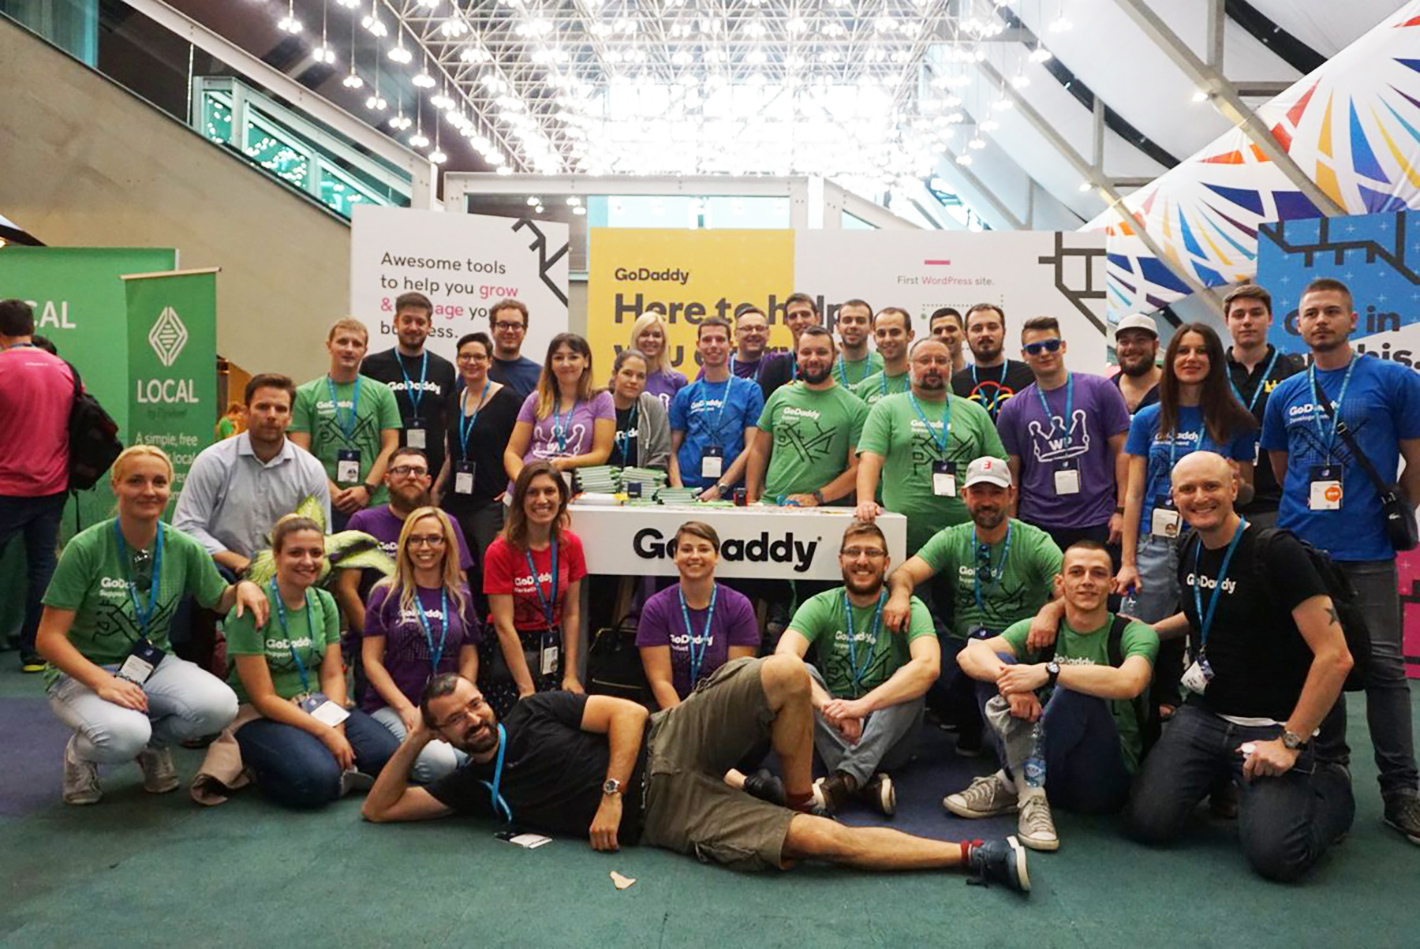 GoDaddy Team at WCEU 2018